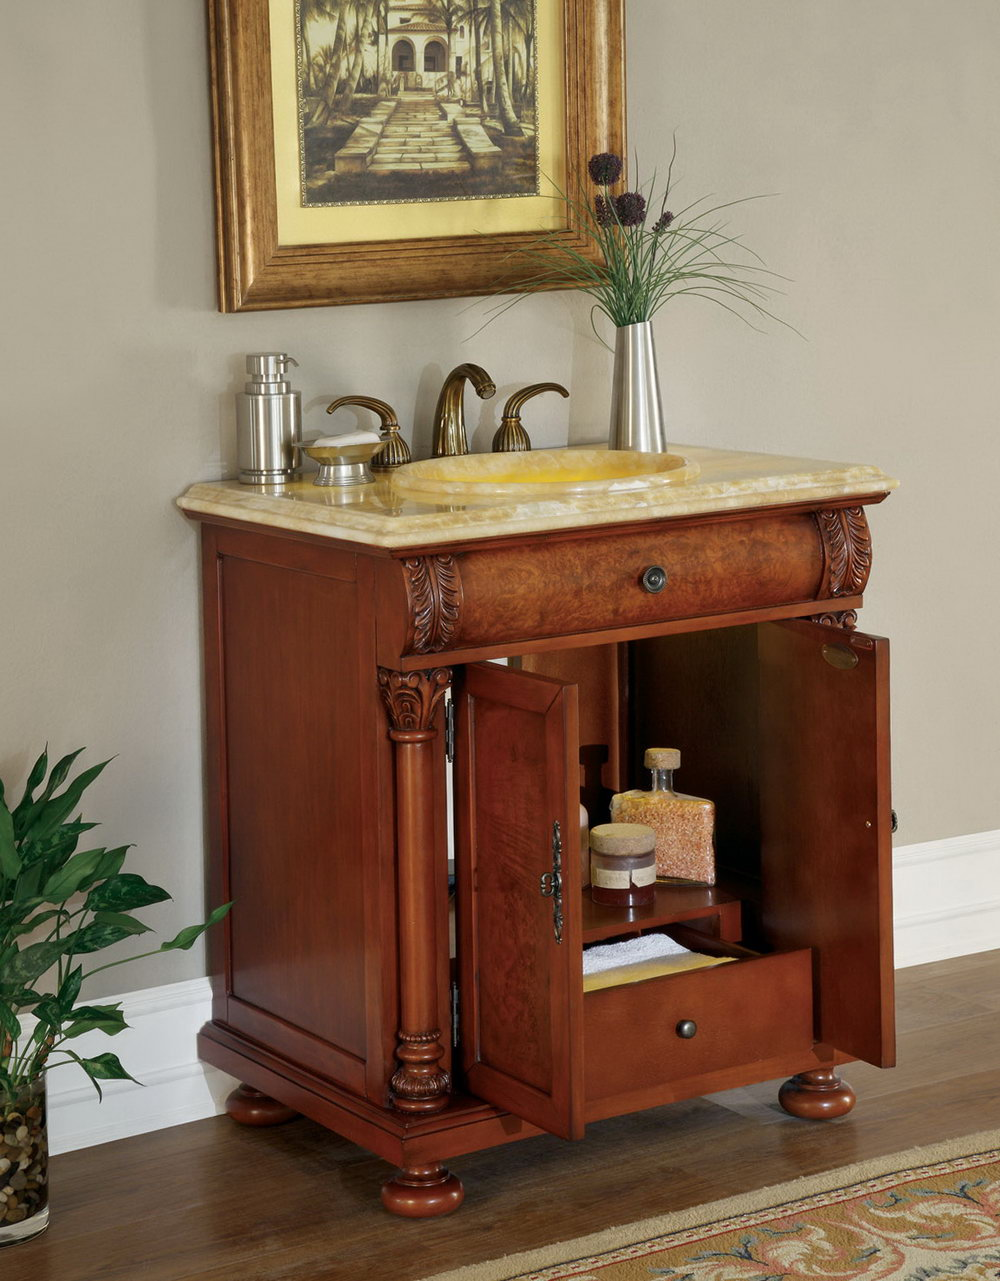 32 Inch Vanity With Sink